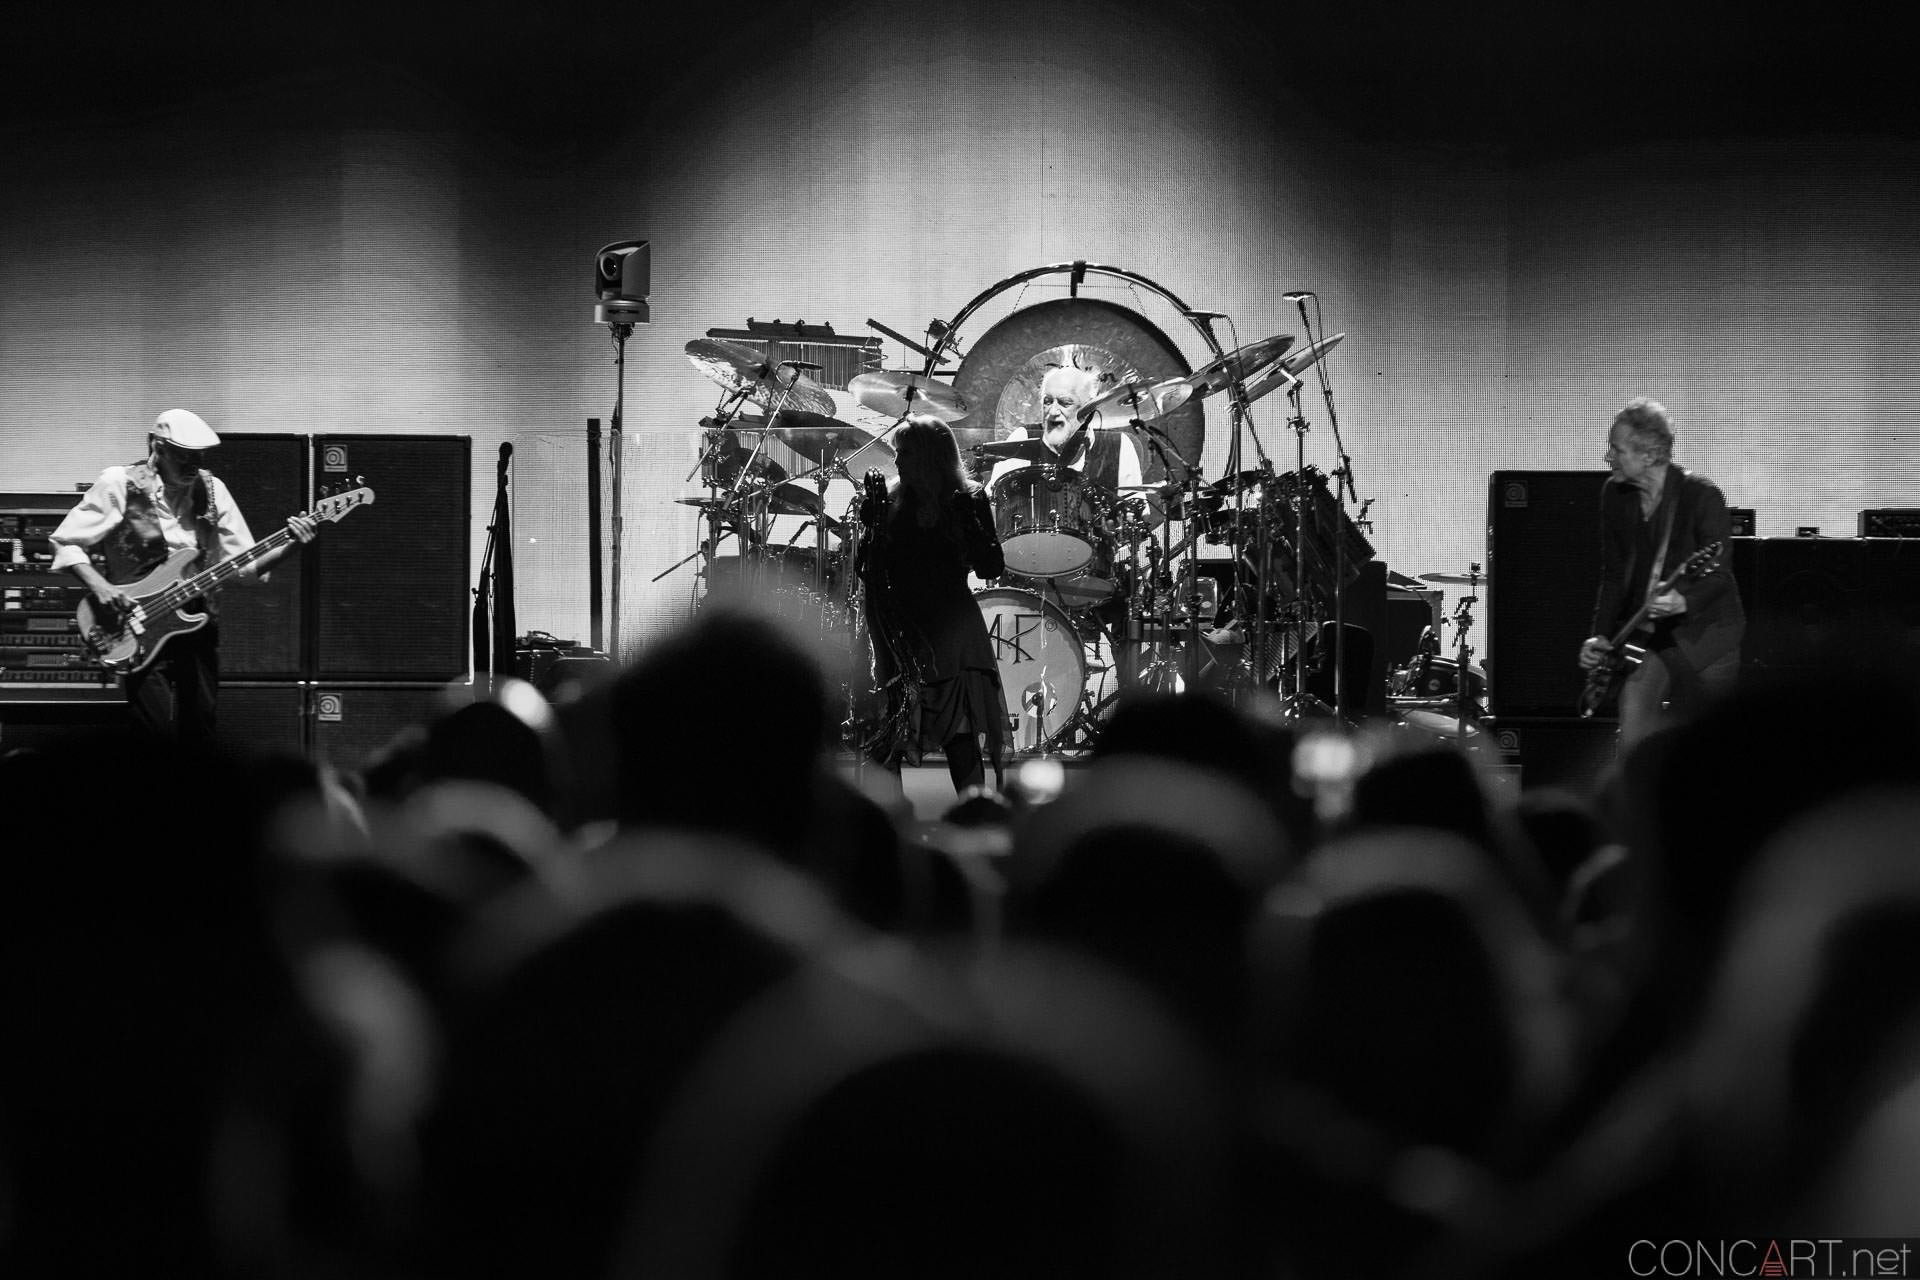 005-fleetwood-mac-live-indianapolis-bankers-life-fieldhouse-2014